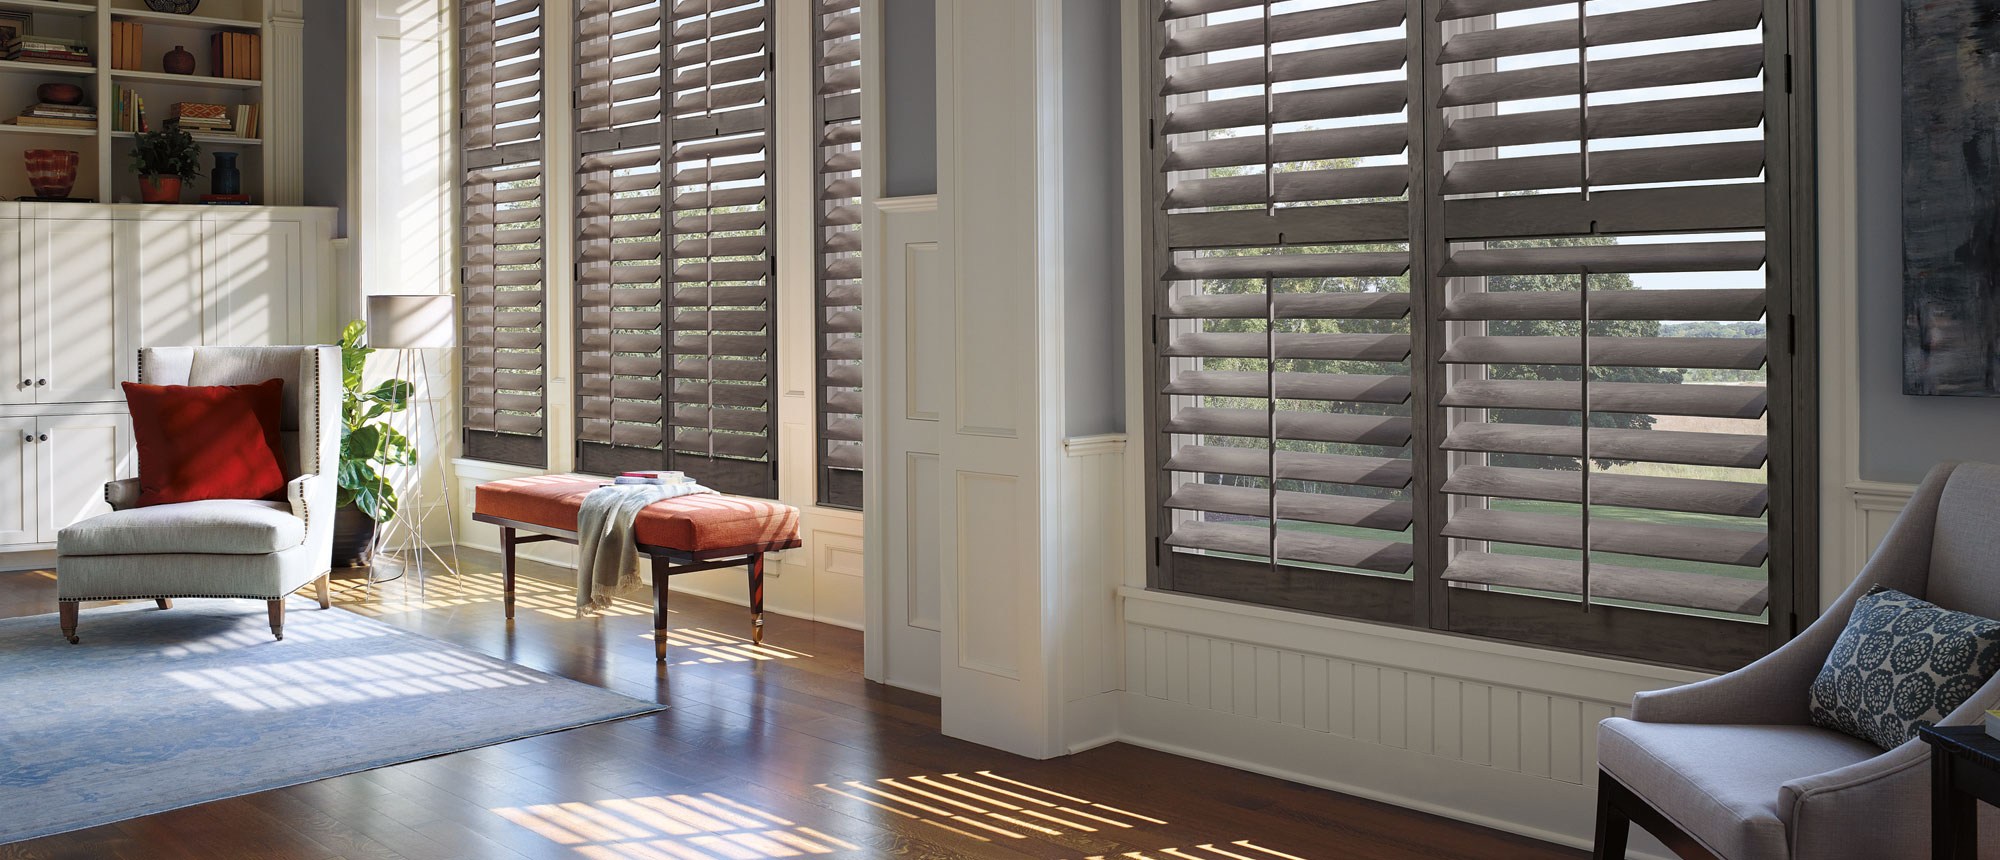 Strickland's Blinds, Shades & Shutters Wilmington NC